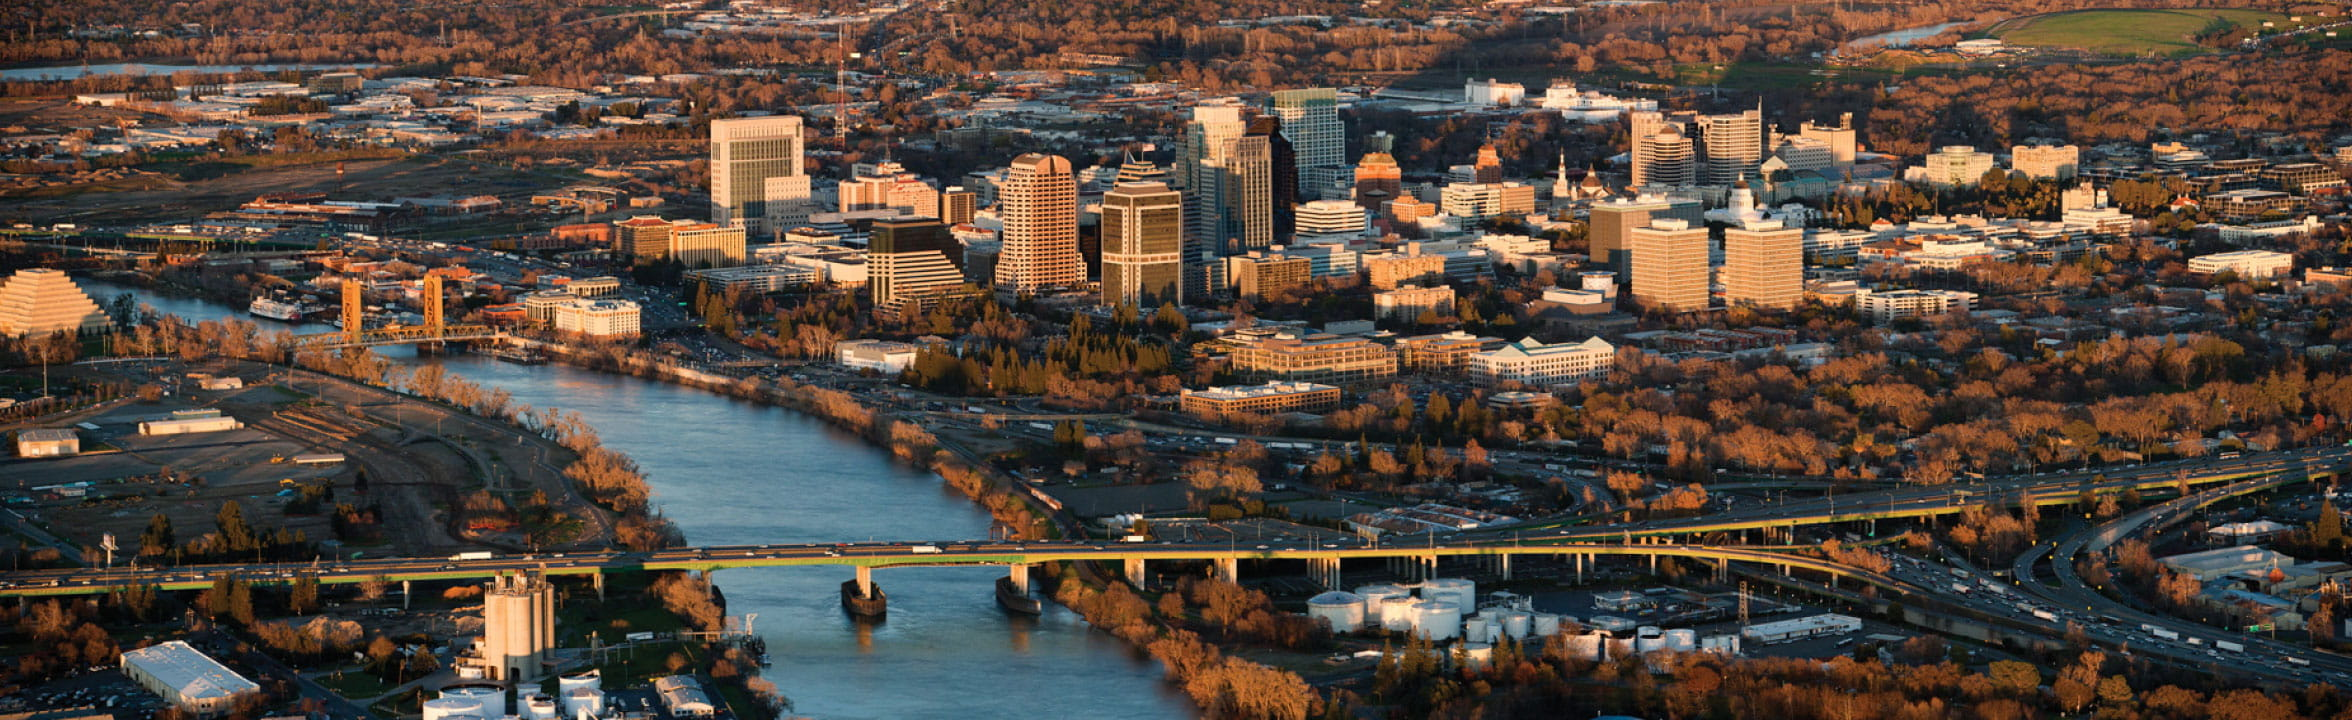 Commercial real estate properties in Sacramento